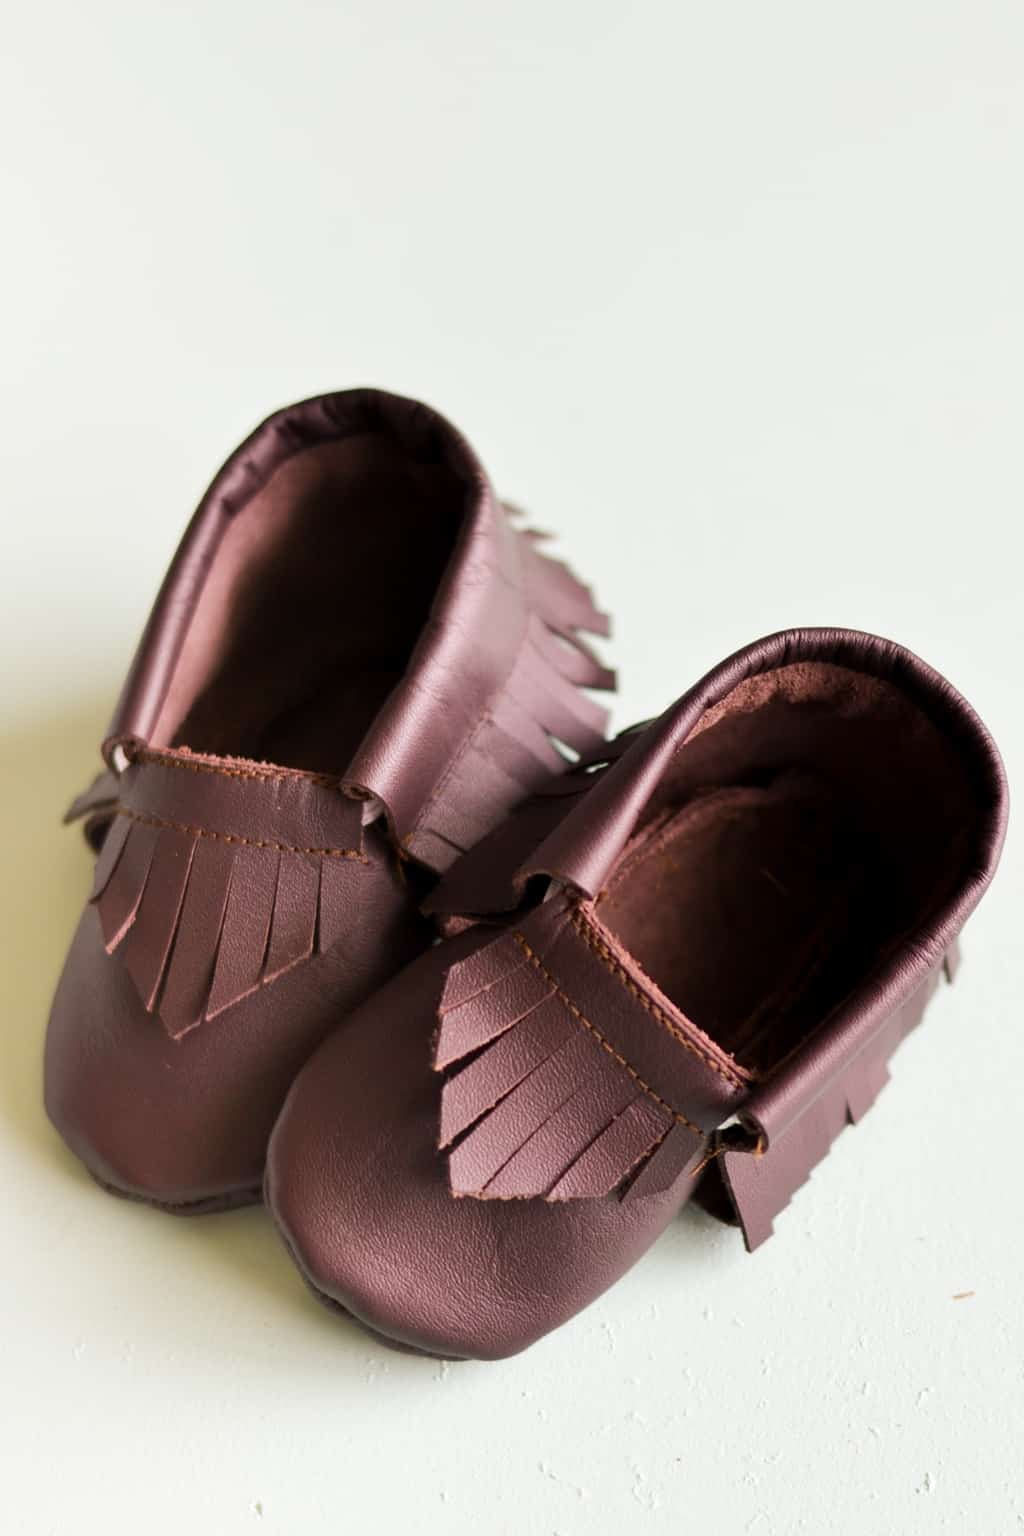 Every new mama in the world will want to purchase these absolutely adorable little baby moccasins!